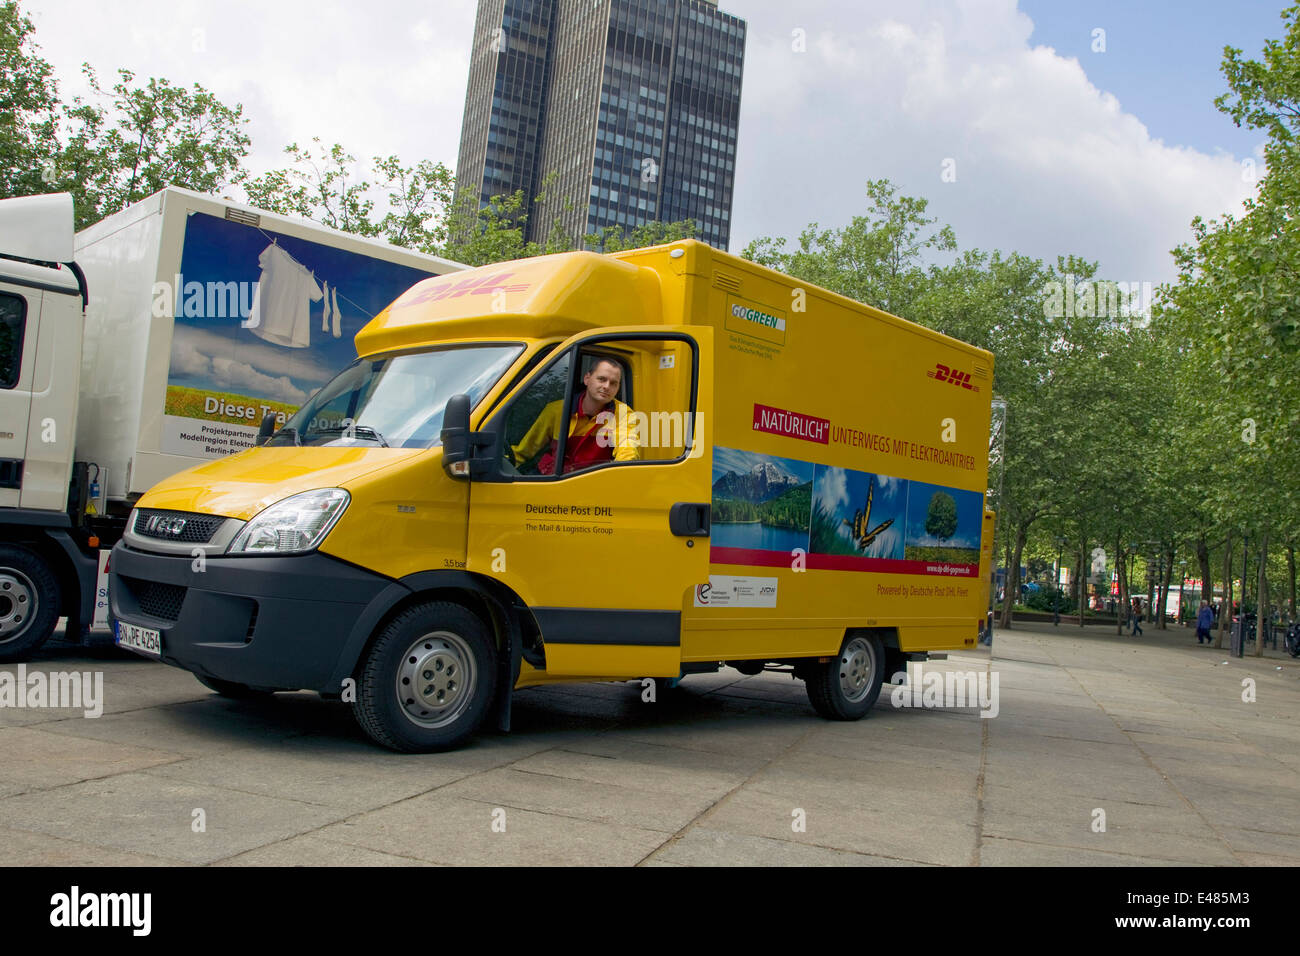 dhl paket elektrische auto stockfoto bild 71480195 alamy. Black Bedroom Furniture Sets. Home Design Ideas